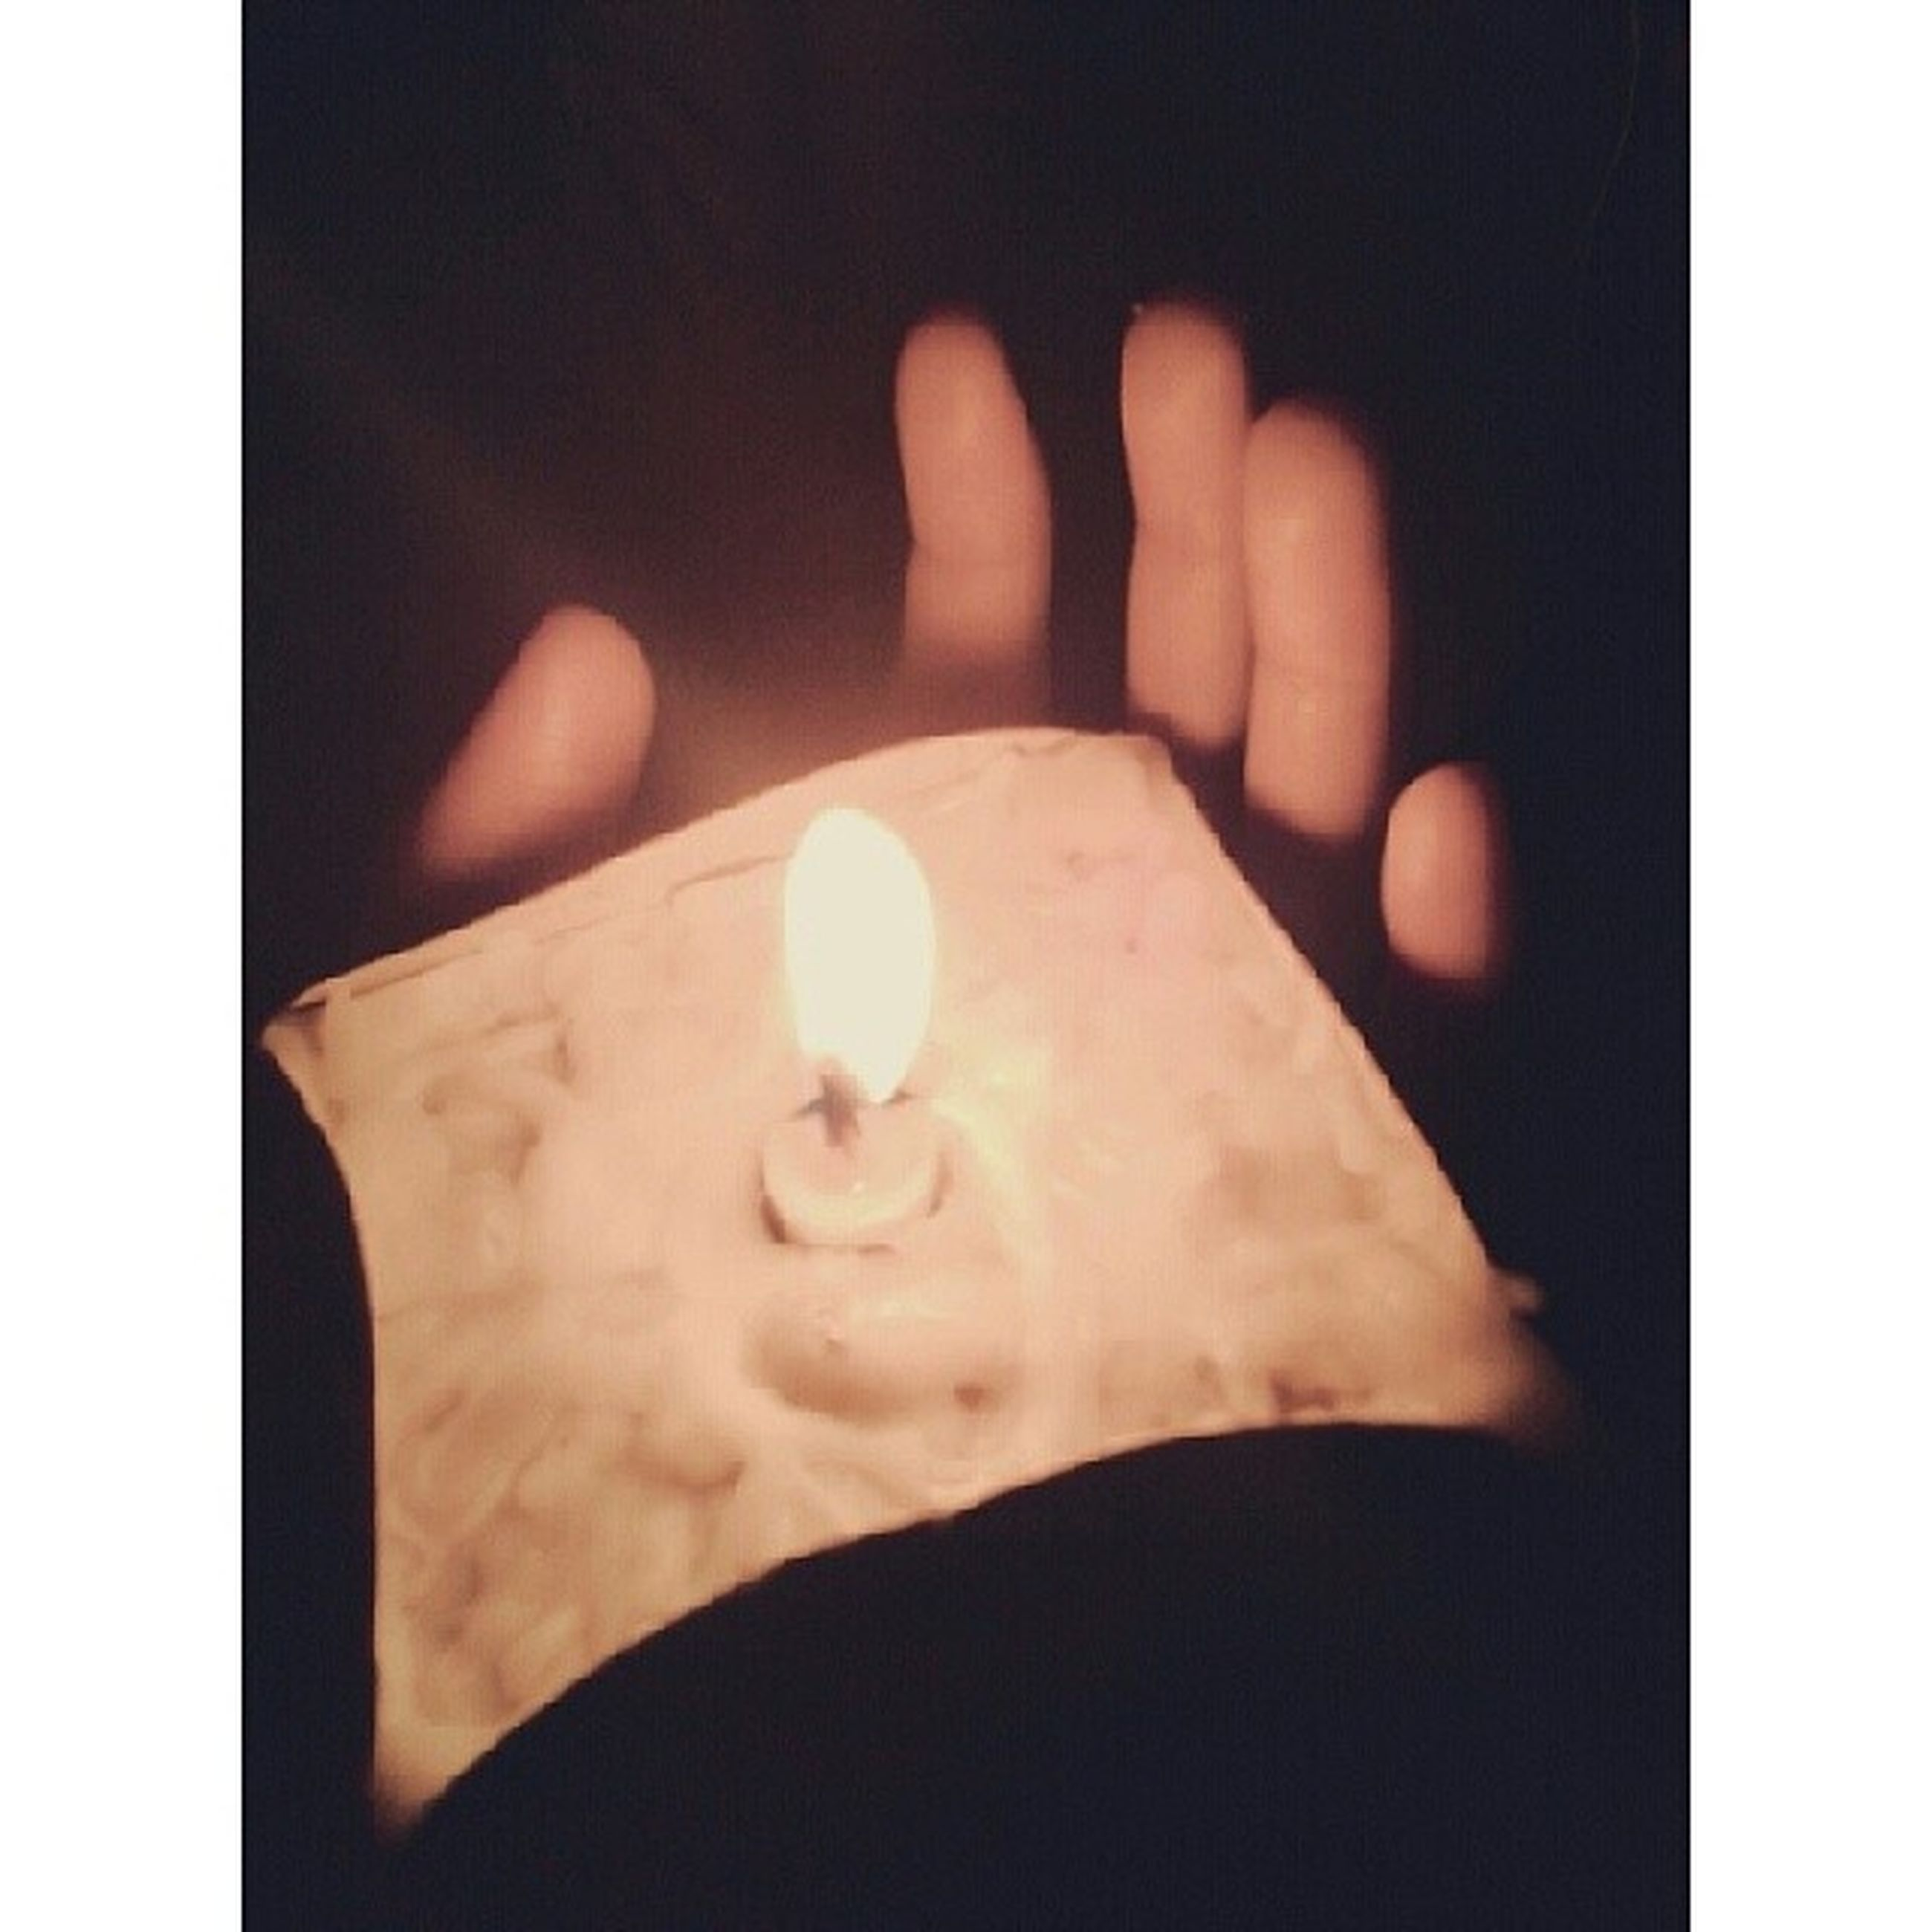 transfer print, indoors, person, auto post production filter, close-up, part of, flame, burning, human finger, holding, copy space, glowing, cropped, lit, unrecognizable person, candle, heat - temperature